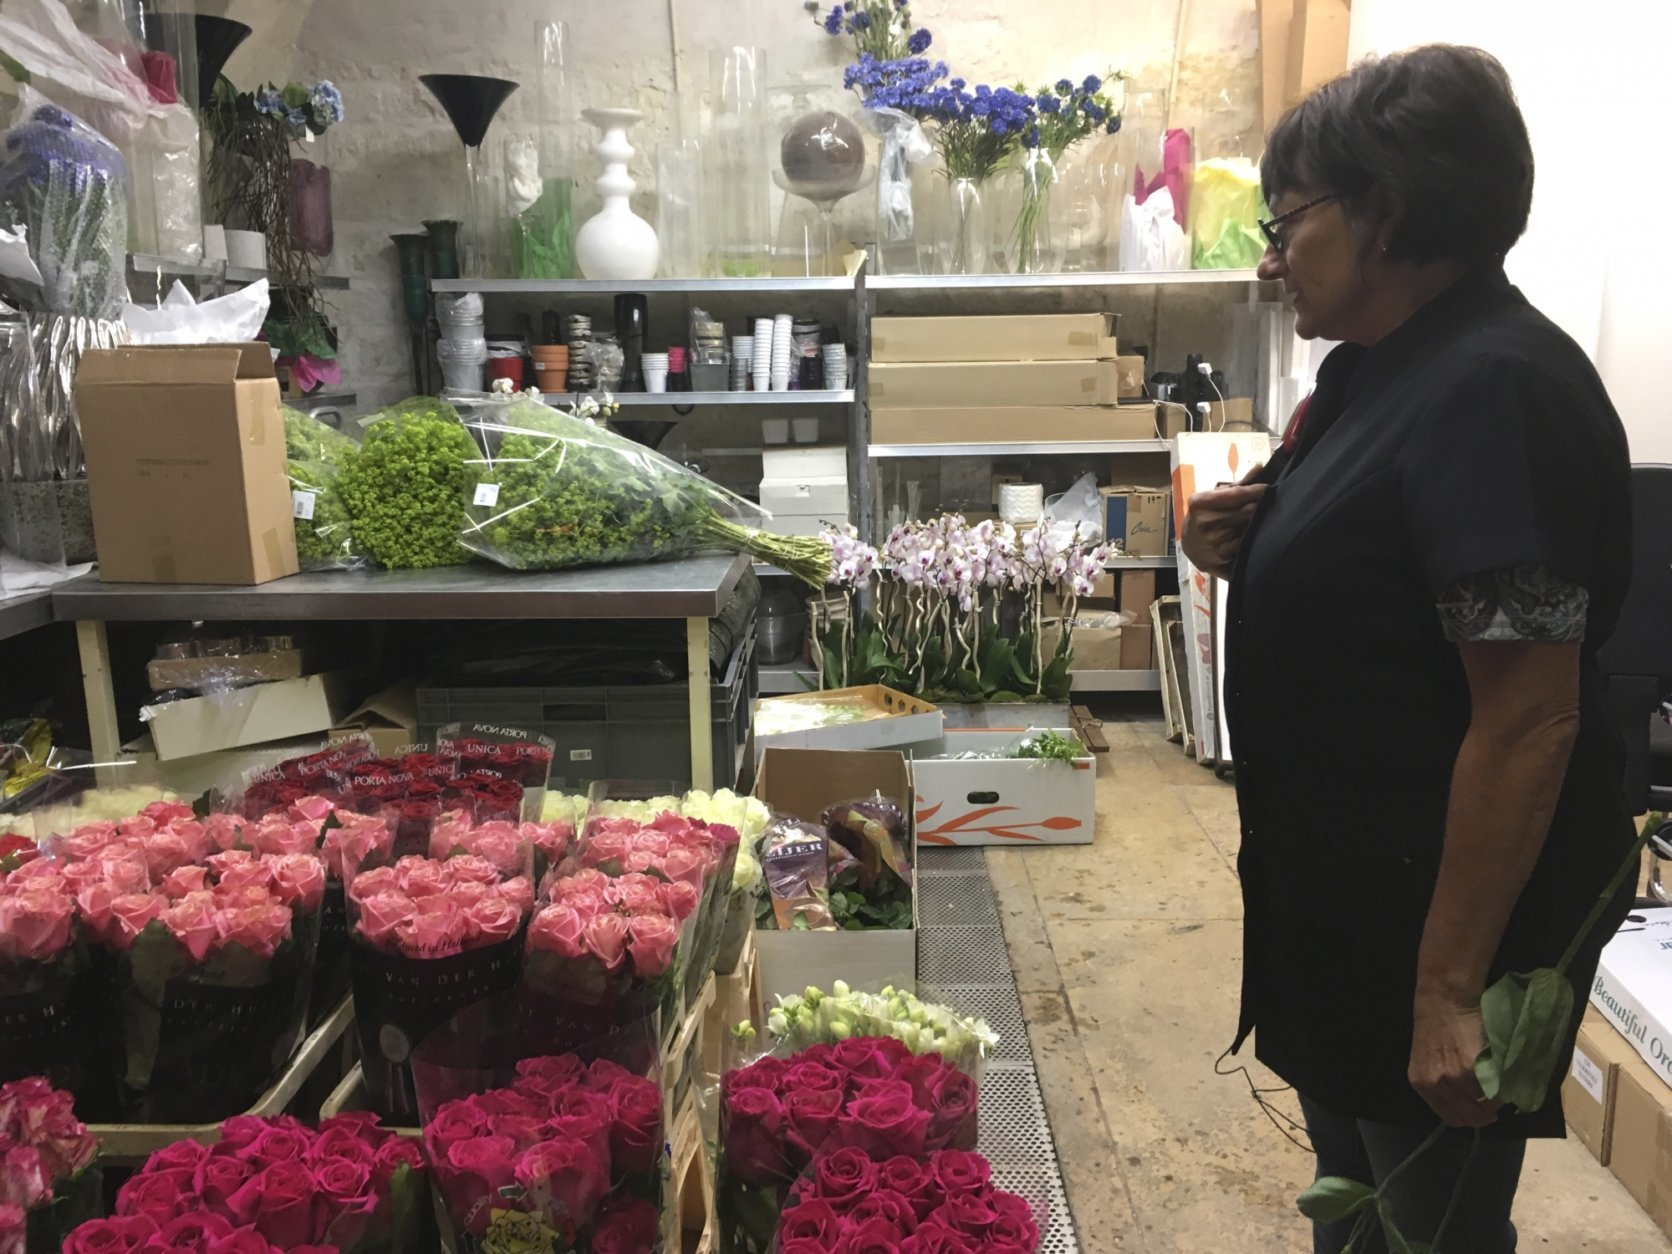 In this Thursday, Sept. 13, 2018 photo,  Marianne Fuseau, head florist, stands in the flower atelier at the Elysee presidential palace in Paris. The French president's wine cellar contains 14,000 bottles so precious that only a lucky few can enter it. Flower bouquets are displayed only for a couple of hours so they always look fresh. And the presidential chefs cook in 150-year-old pans. These and other behind-the-scenes quirks of the Elysee Palace are now getting a rare airing. (AP Photo/Sylvie Corbet)